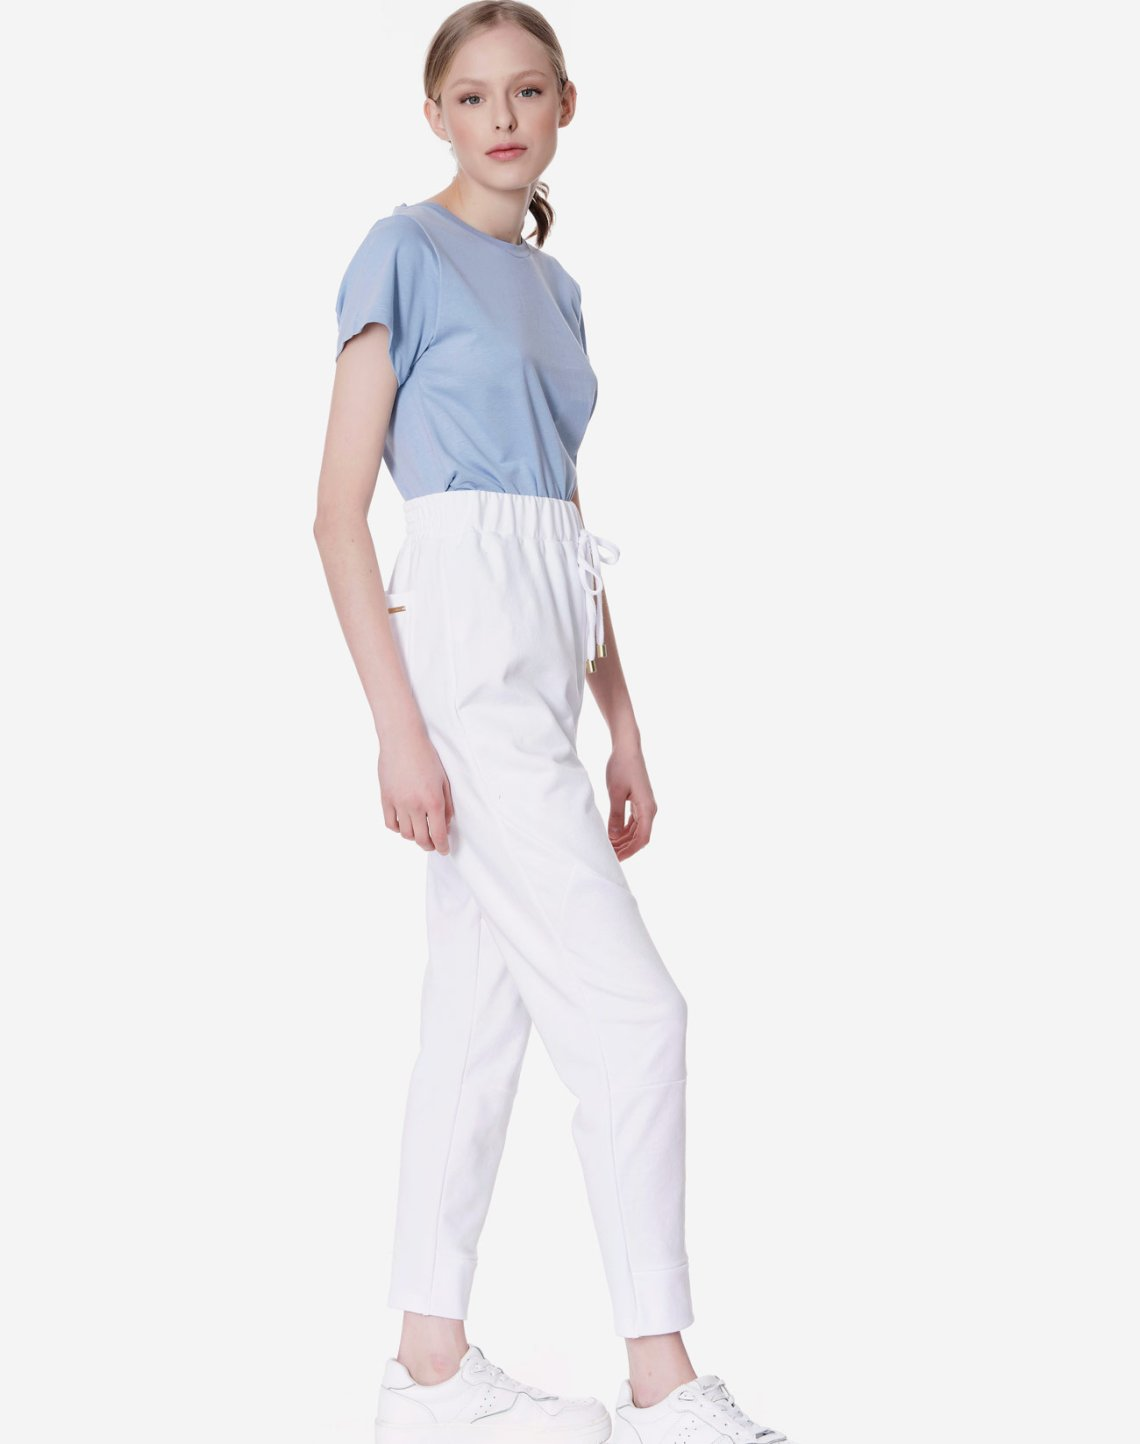 Sweatpants with seam detail